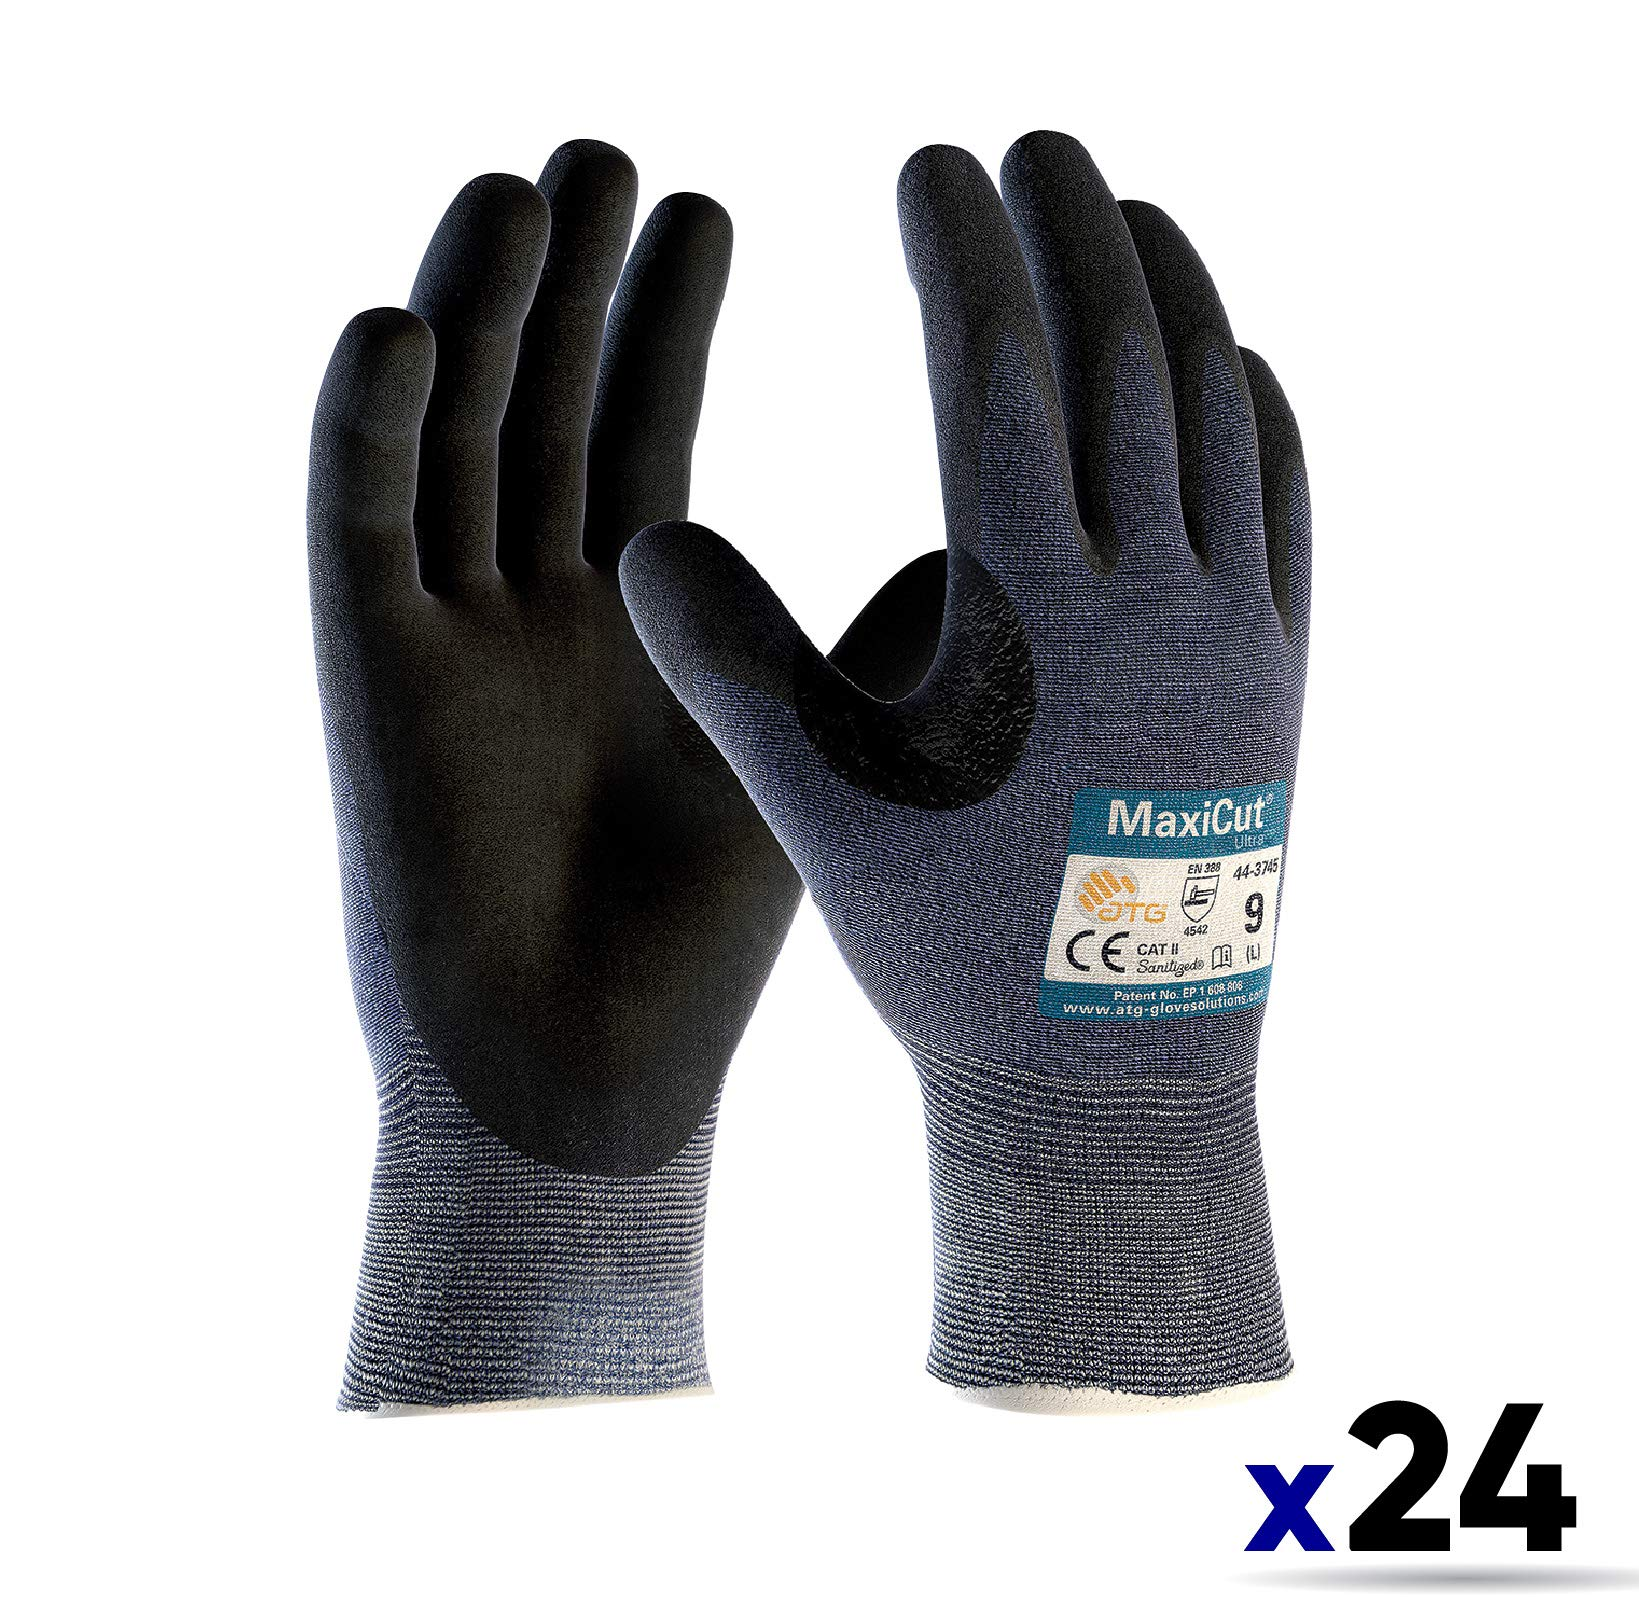 MAXICUT Ultra by ATG, 44-3745 (X-Large) - Level 3 Cut Resistant Gloves (24 Pairs)